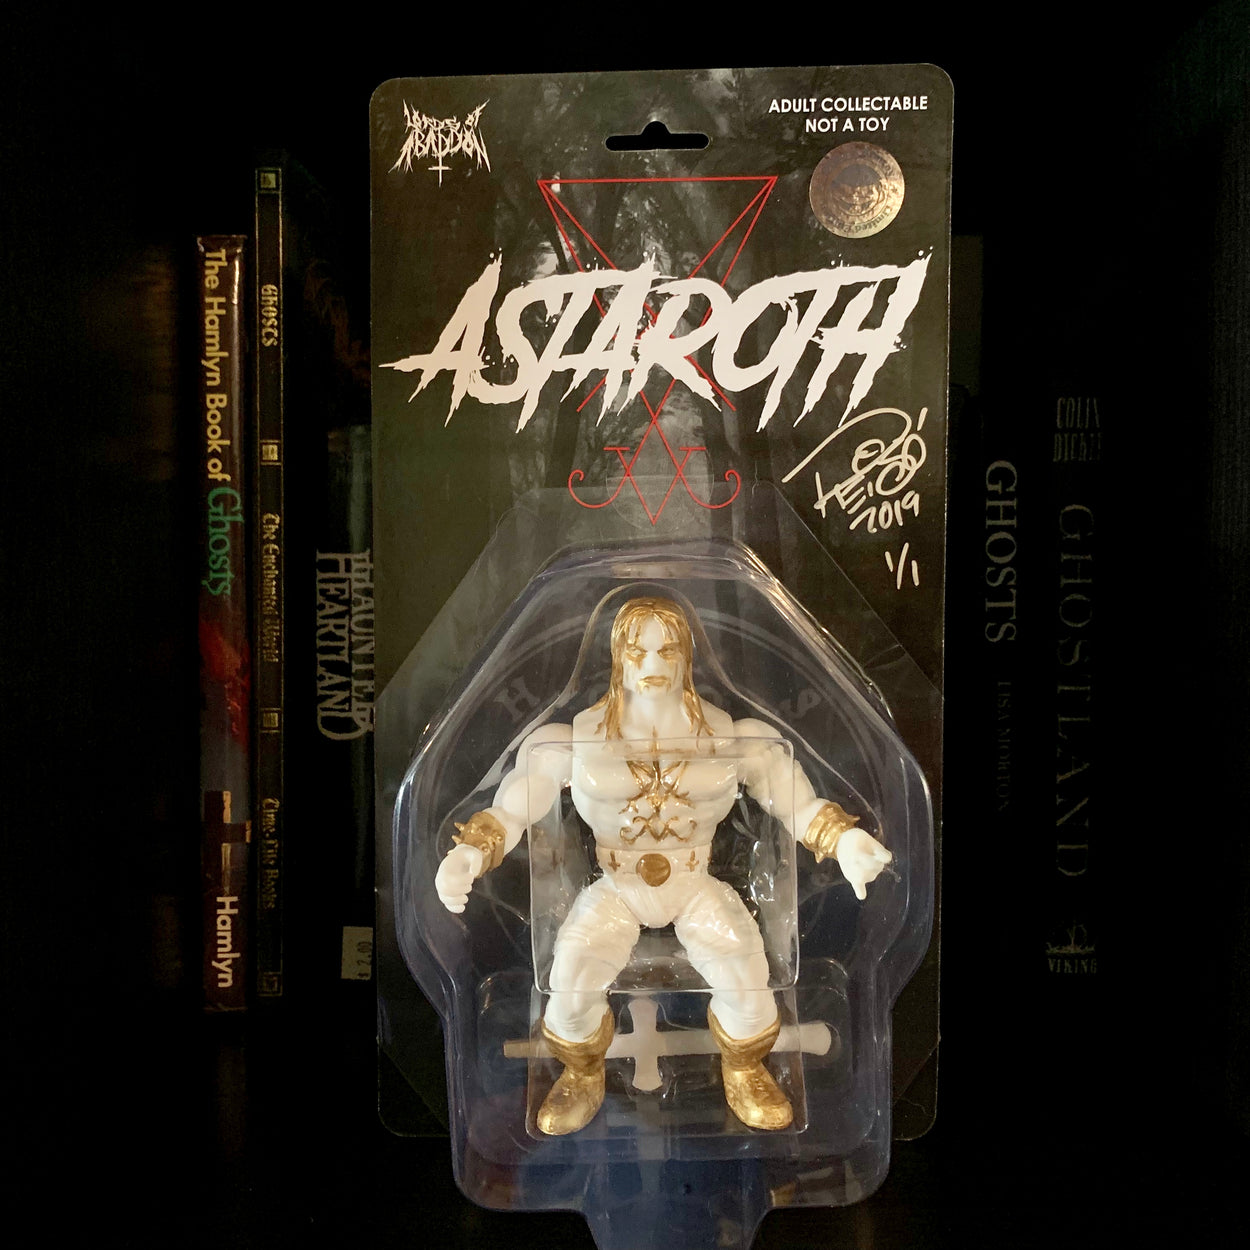 Lords of Abaddon (Astaroth) Blind Box Custom